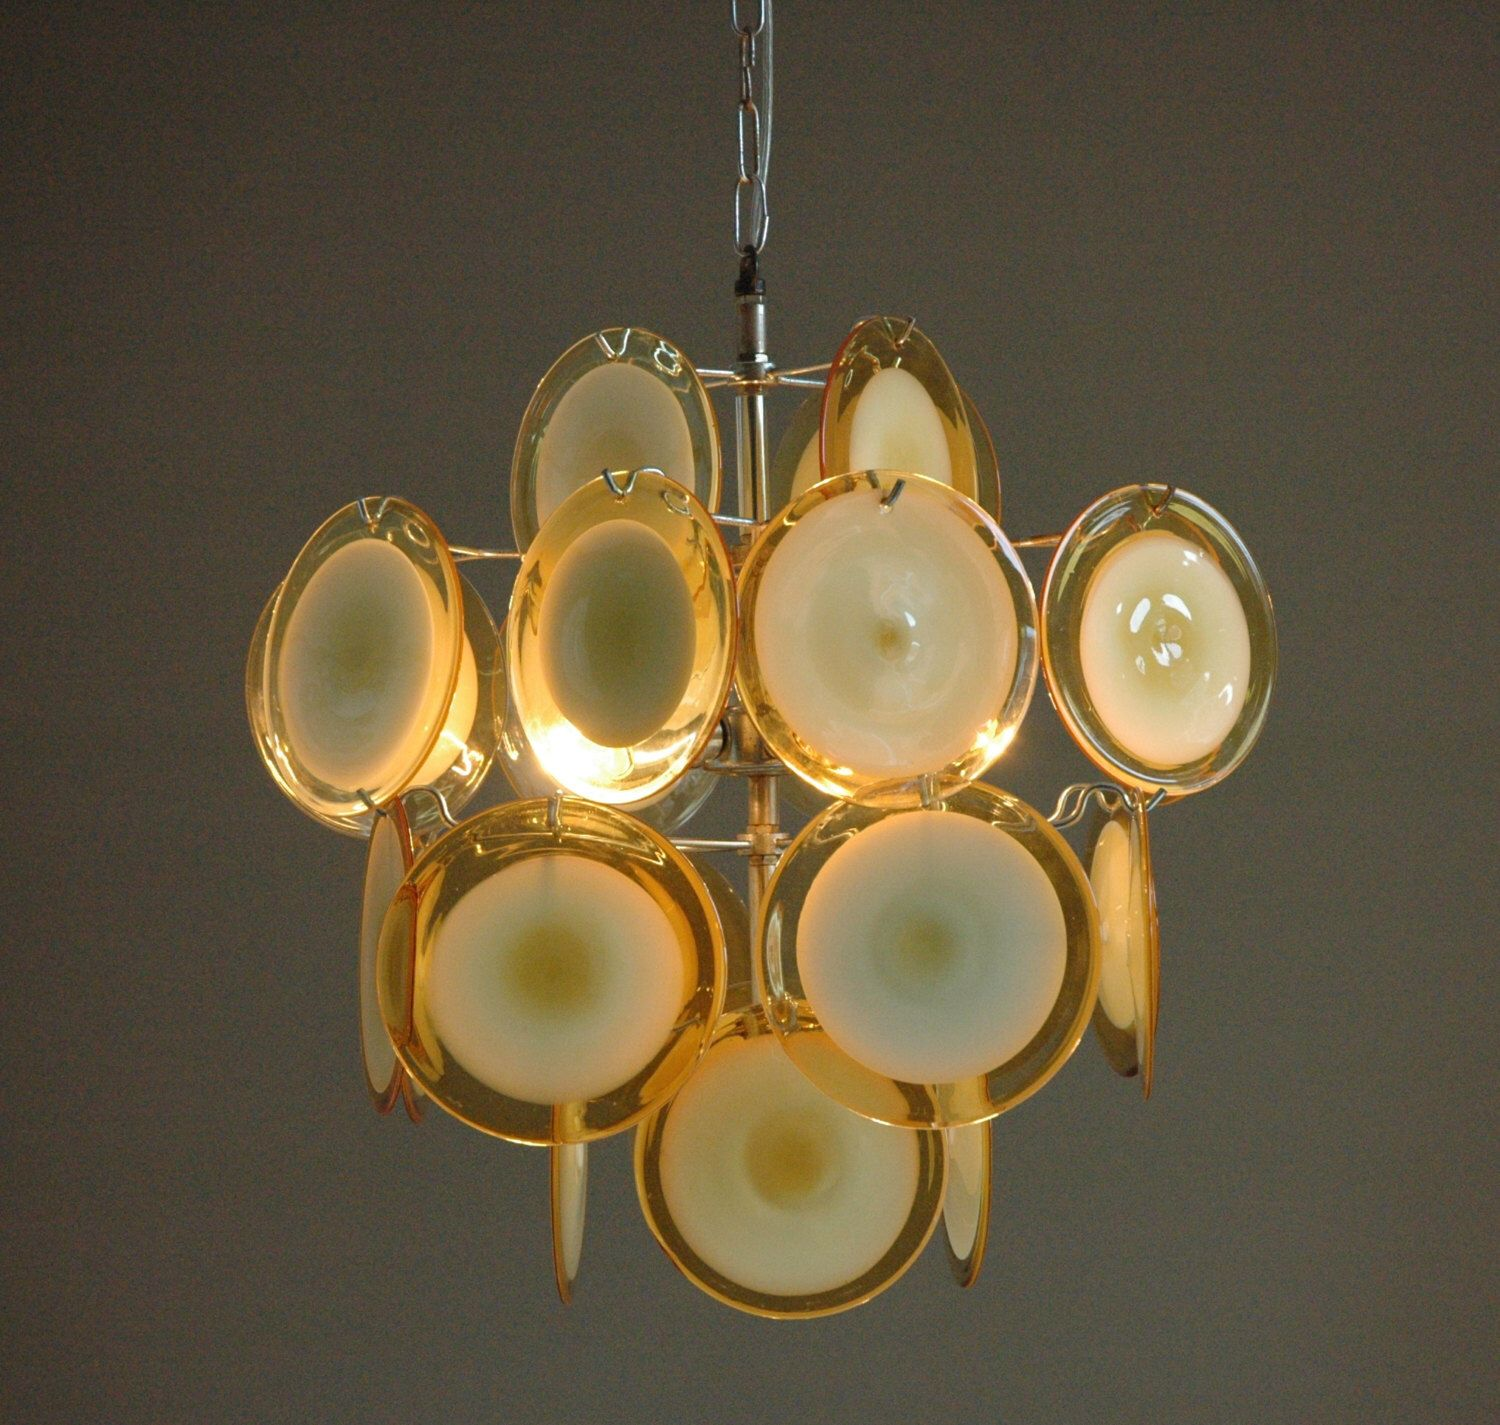 Vistosi chandelier in yellow 24 murano glass discs by iconiclights vistosi chandelier in yellow 24 murano glass discs by iconiclights on etsy https aloadofball Image collections